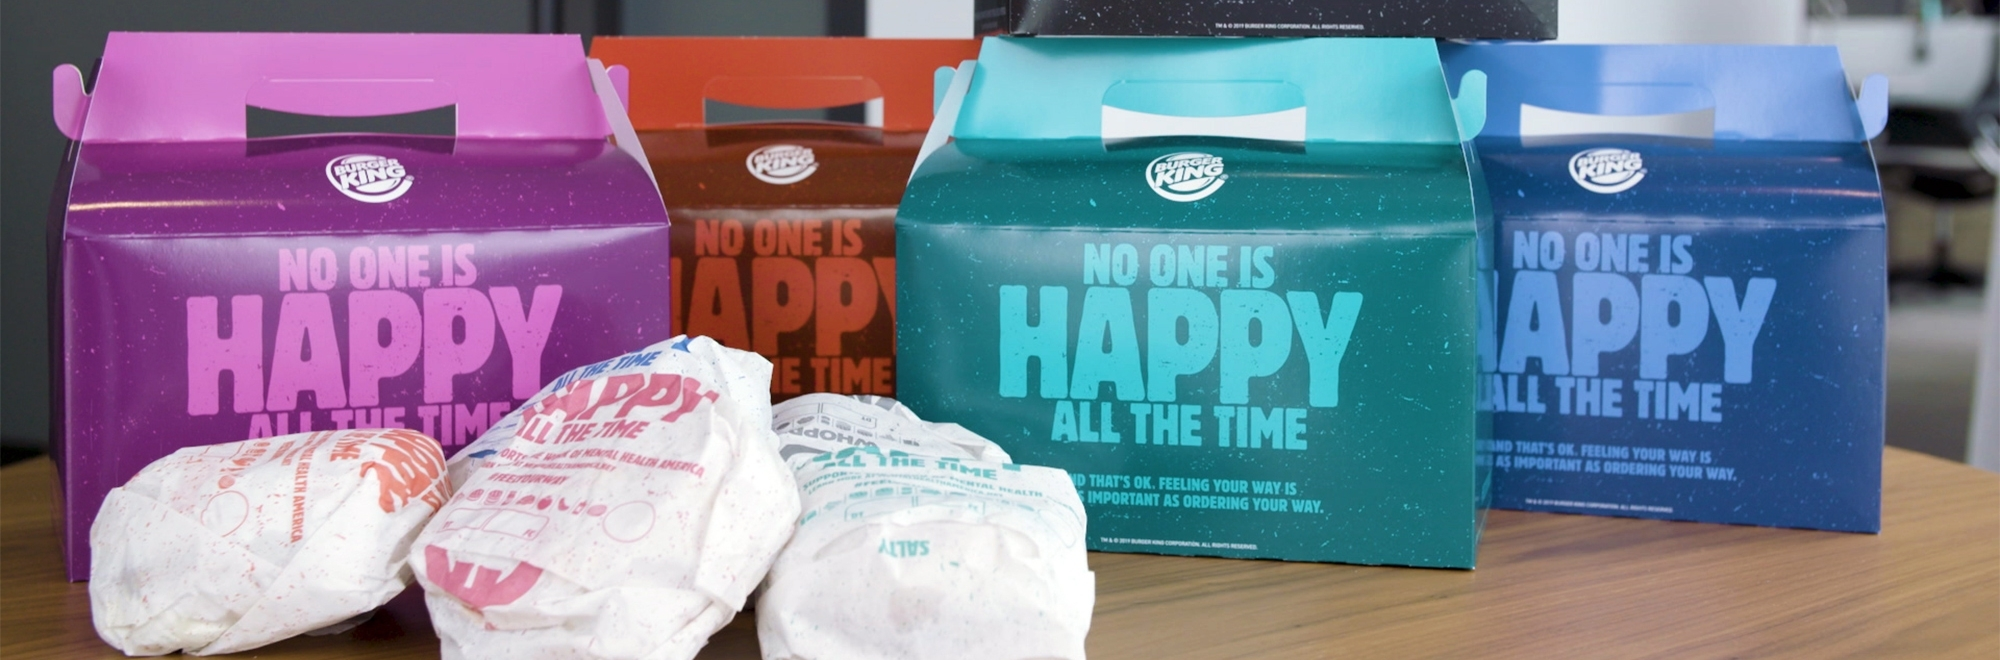 In Mental Health Awareness Week, Burger King's campaign fails to appreciate the reality of suffering from mental illness